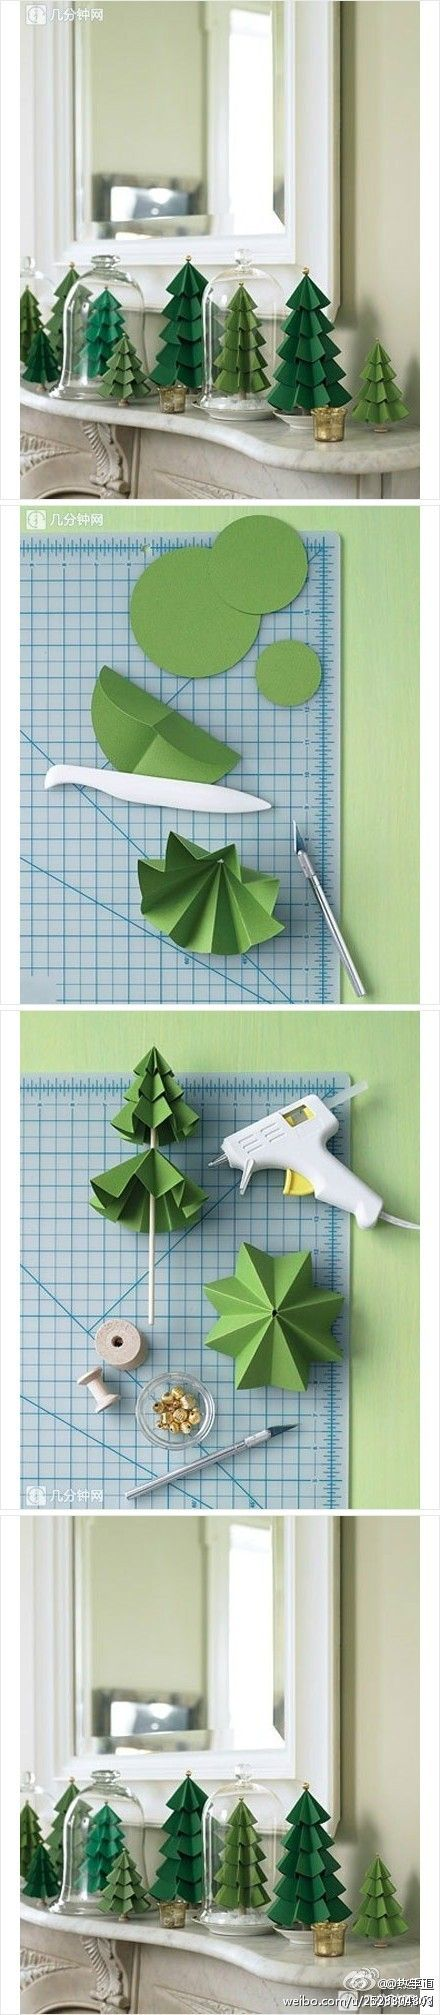 松树,圣诞树摆件, Cool Christmas Crafts , Paper Crafts for Teens , paper, craft, xmas ,wrap, gift, decor,blumen,basteln,bastelvorlage,tutorial diy, winter kids crafts, christmas tree, green decoration